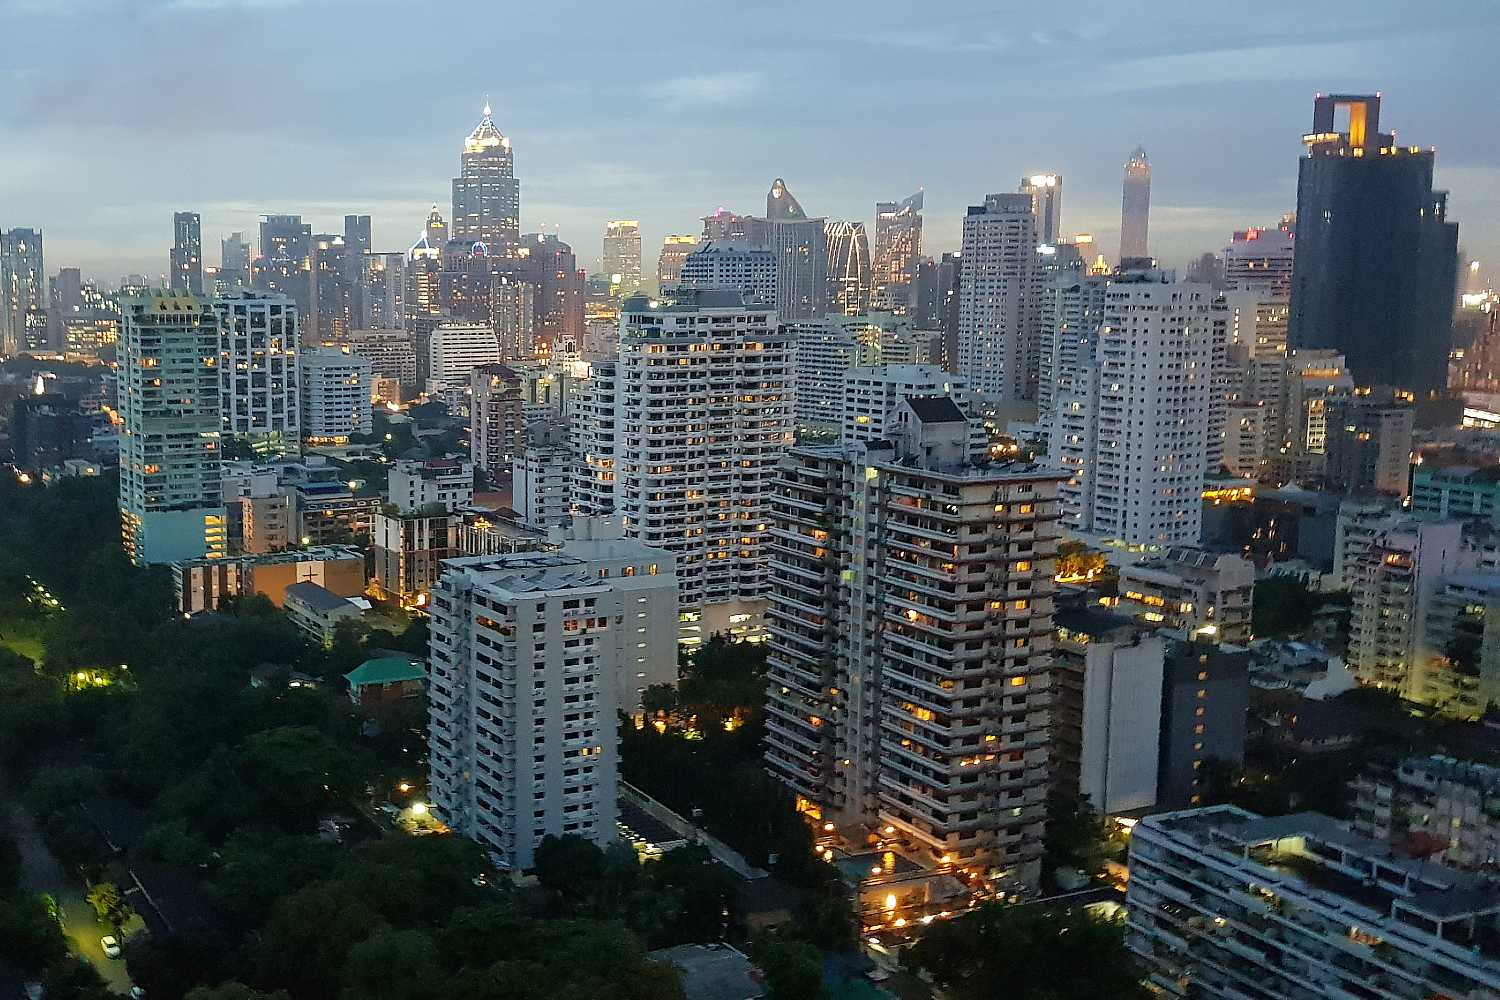 View from Long Table over the skyline of Bangkok